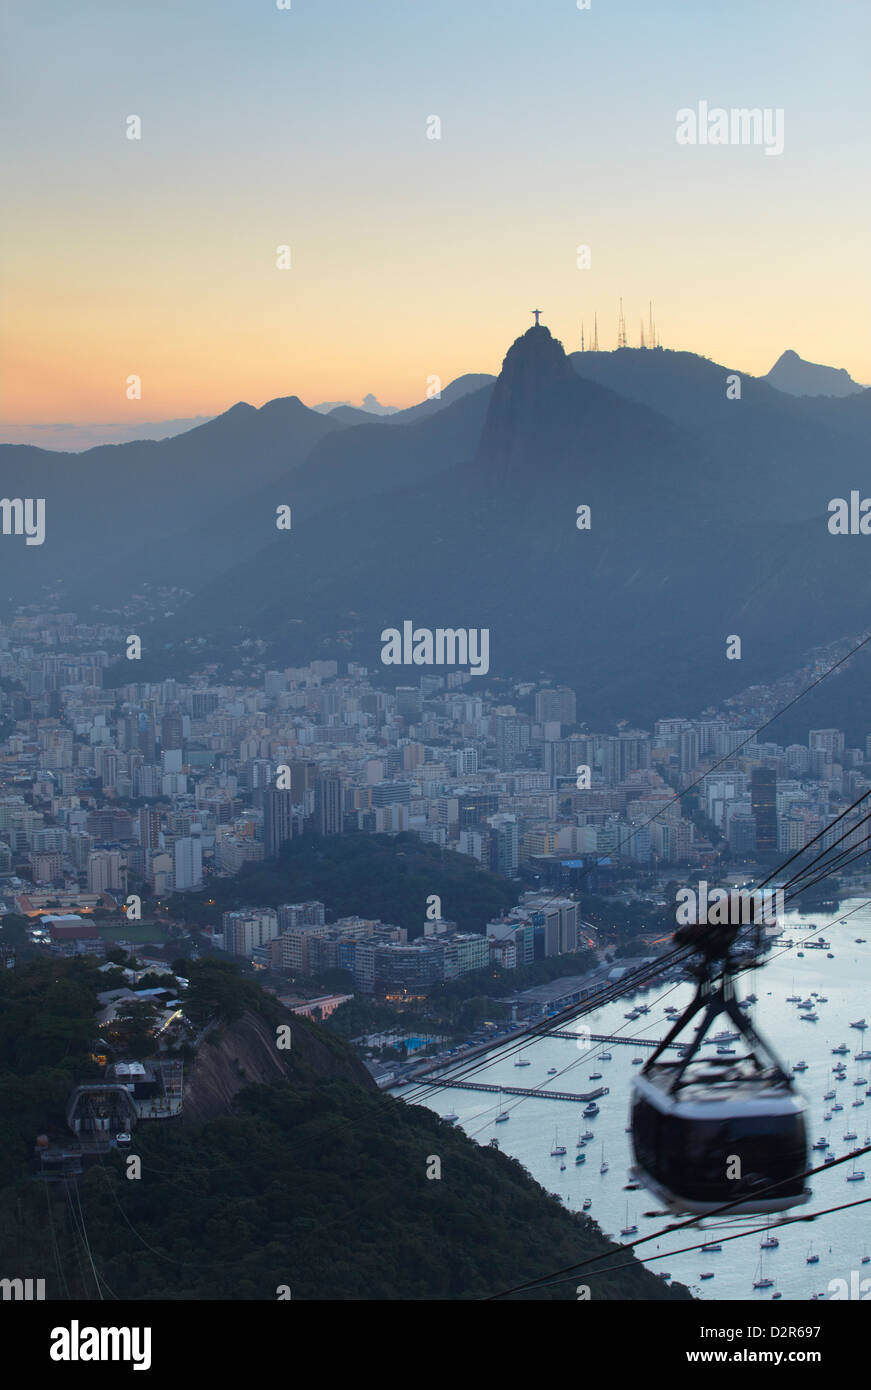 View of Christ the Redeemer statue and Botafogo Bay from Sugar Loaf Mountain, Rio de Janeiro, Brazil, South America - Stock Image